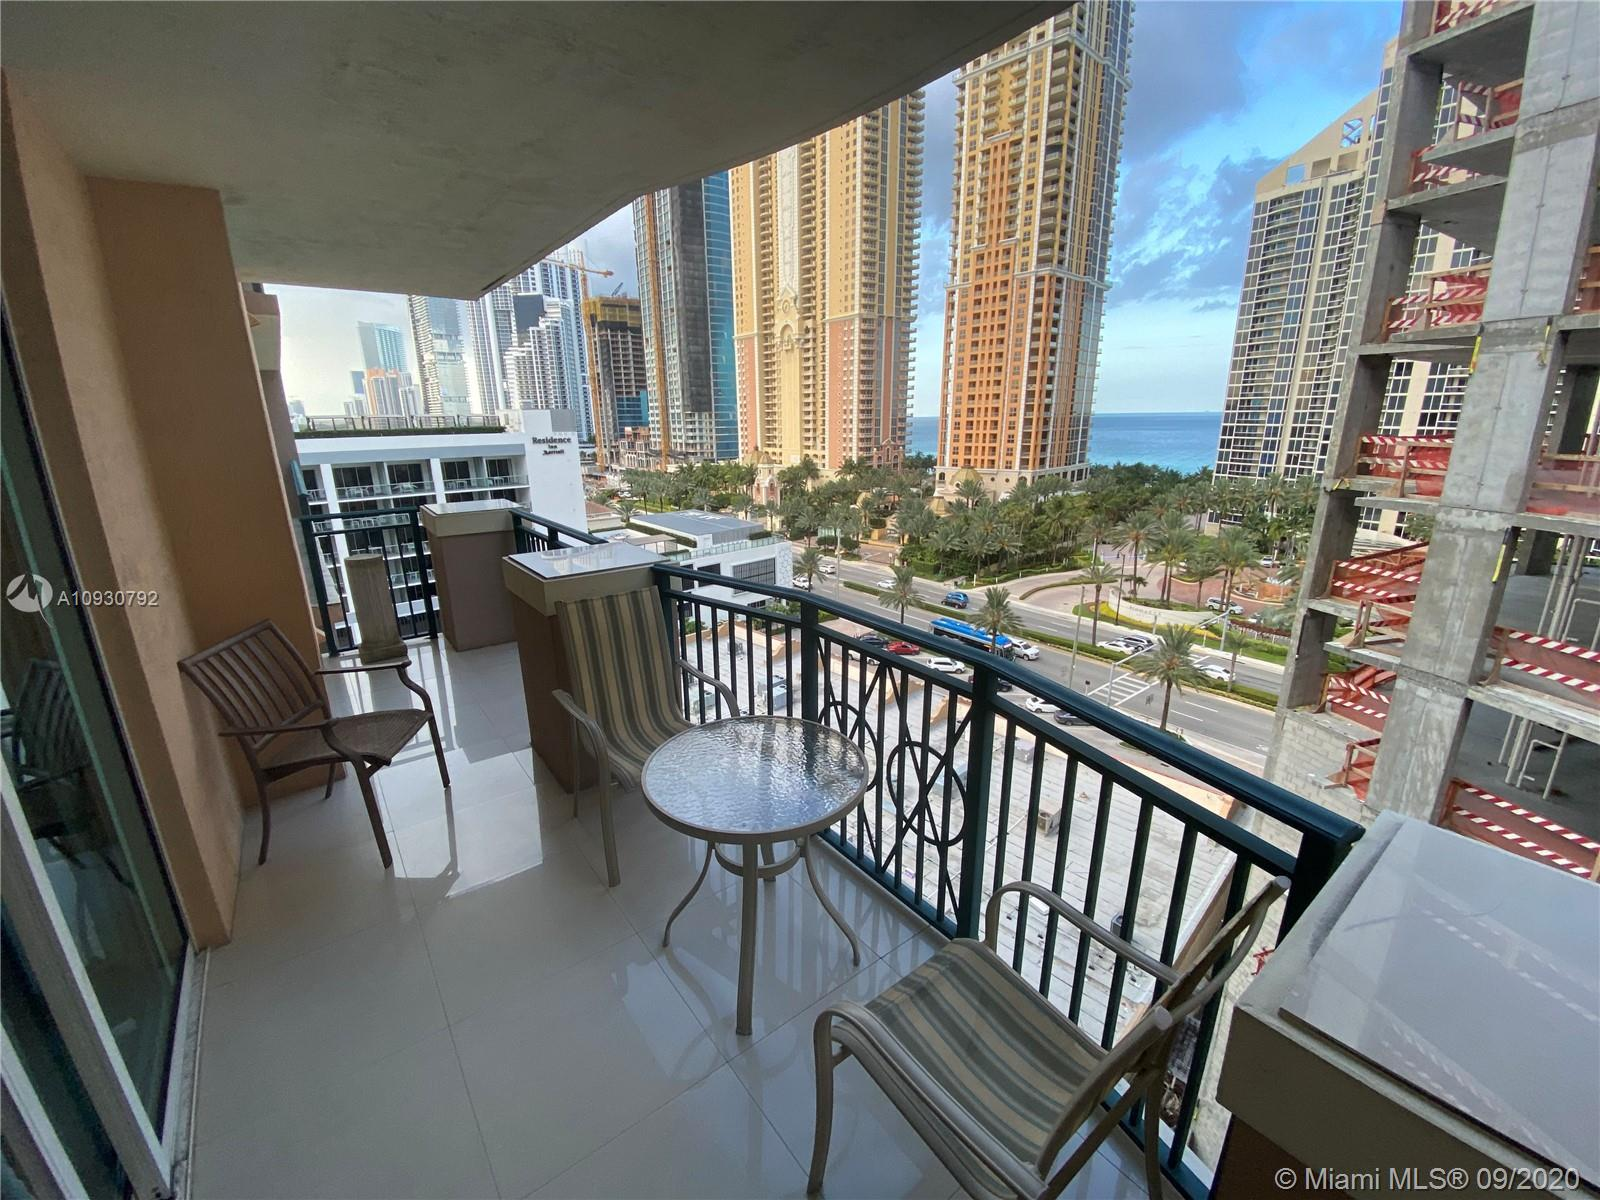 17555  Atlantic Blvd #1105 For Sale A10930792, FL